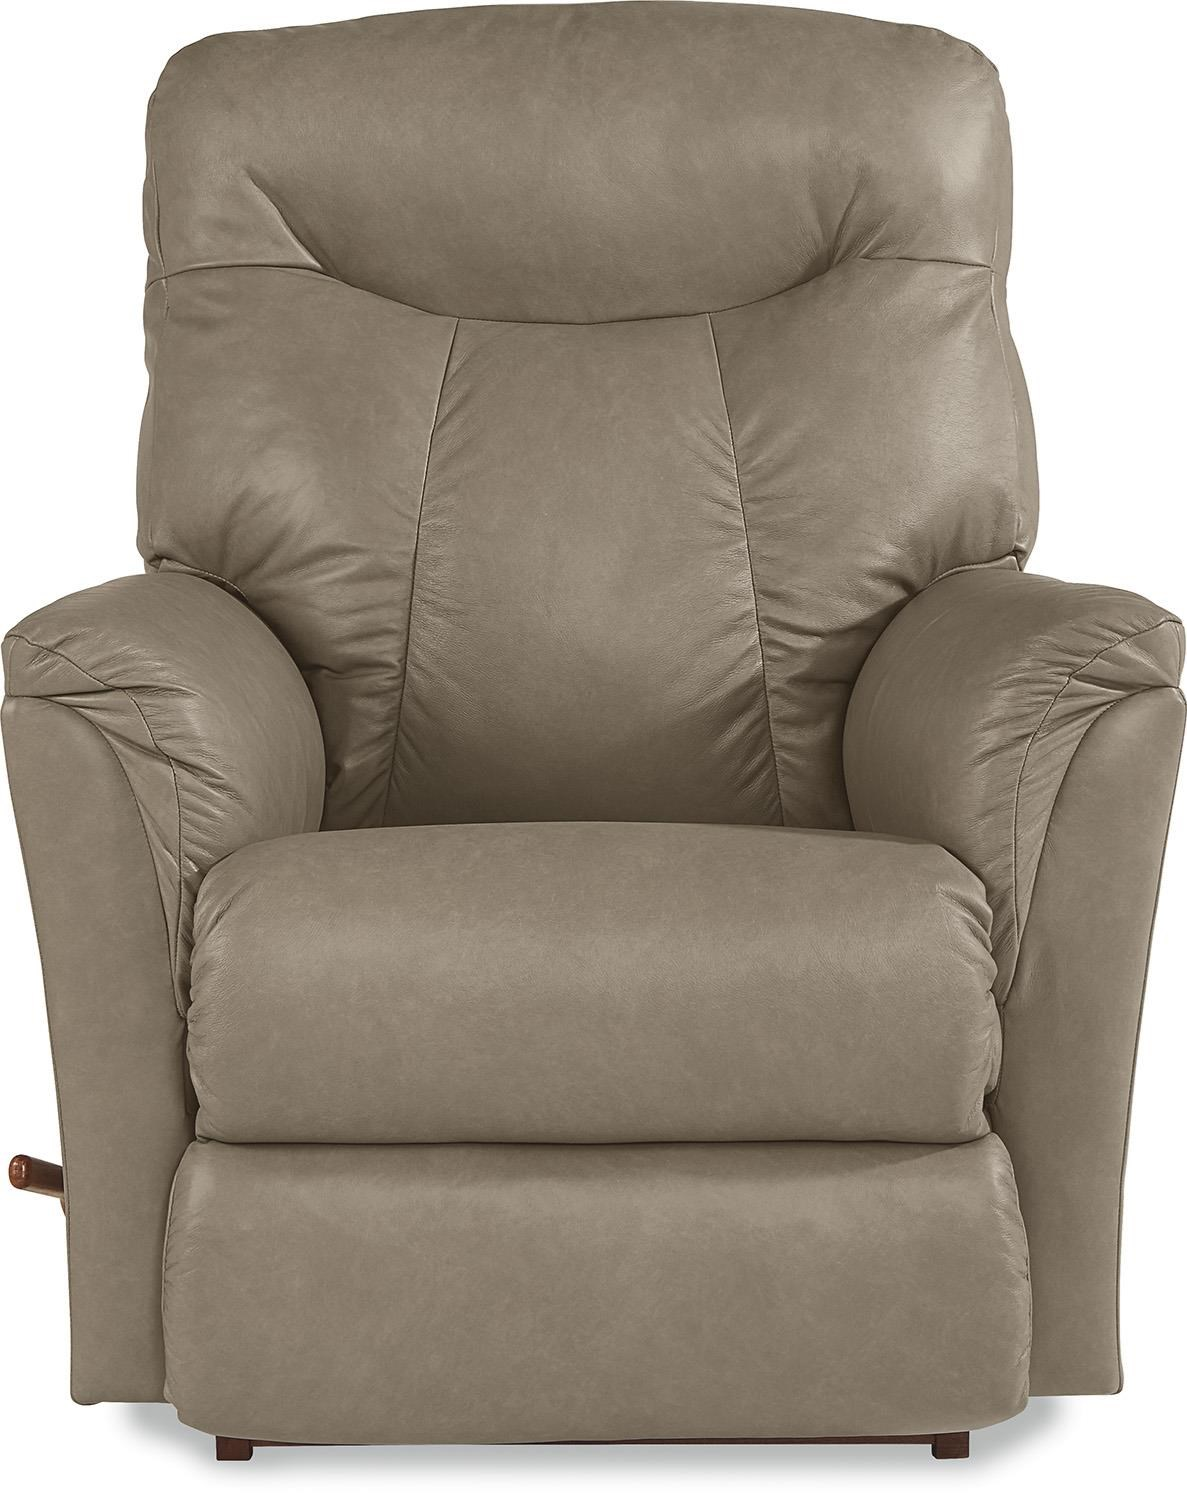 La-Z-Boy Fabric Fortune Leather Dusk Reclina-Rocker® Recline - Item  sc 1 st  Great American Home Store & La-Z-Boy Fabric Fortune Leather Dusk Reclina-Rocker® Recliner ... islam-shia.org